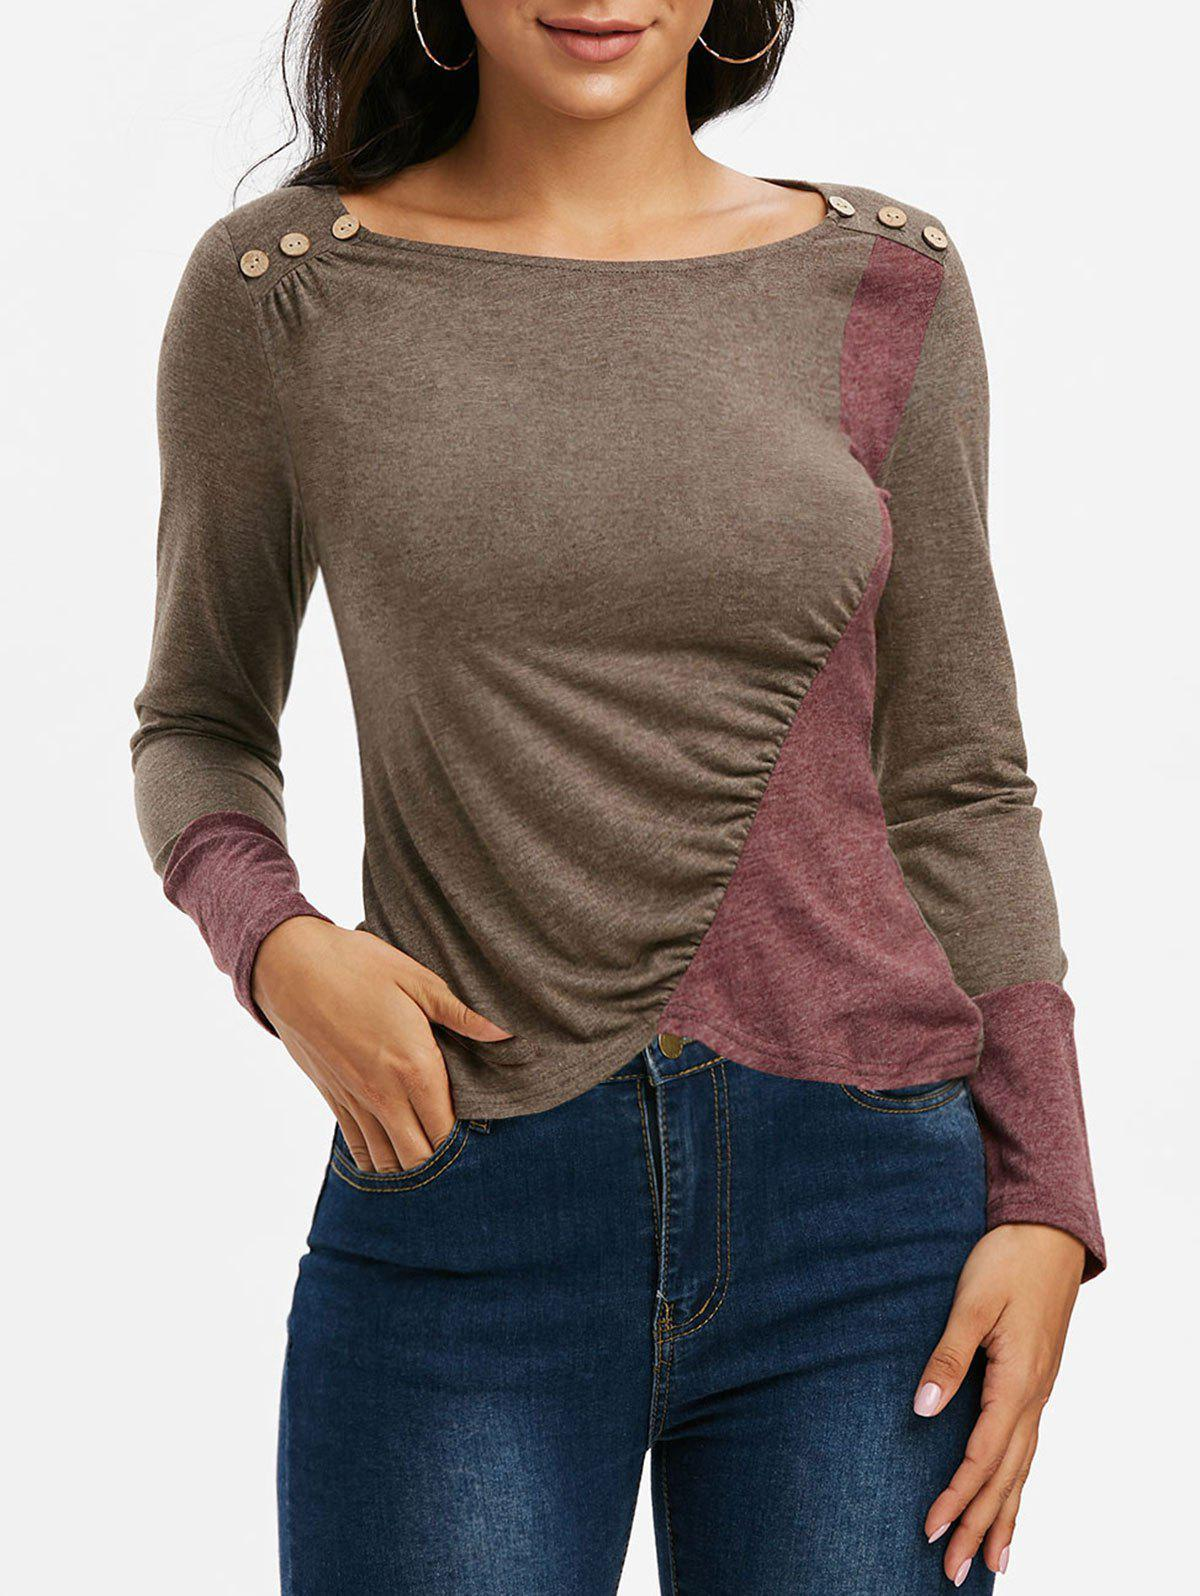 Ruched Contrast Color Asymmetrical Long Sleeve T Shirt - COFFEE M